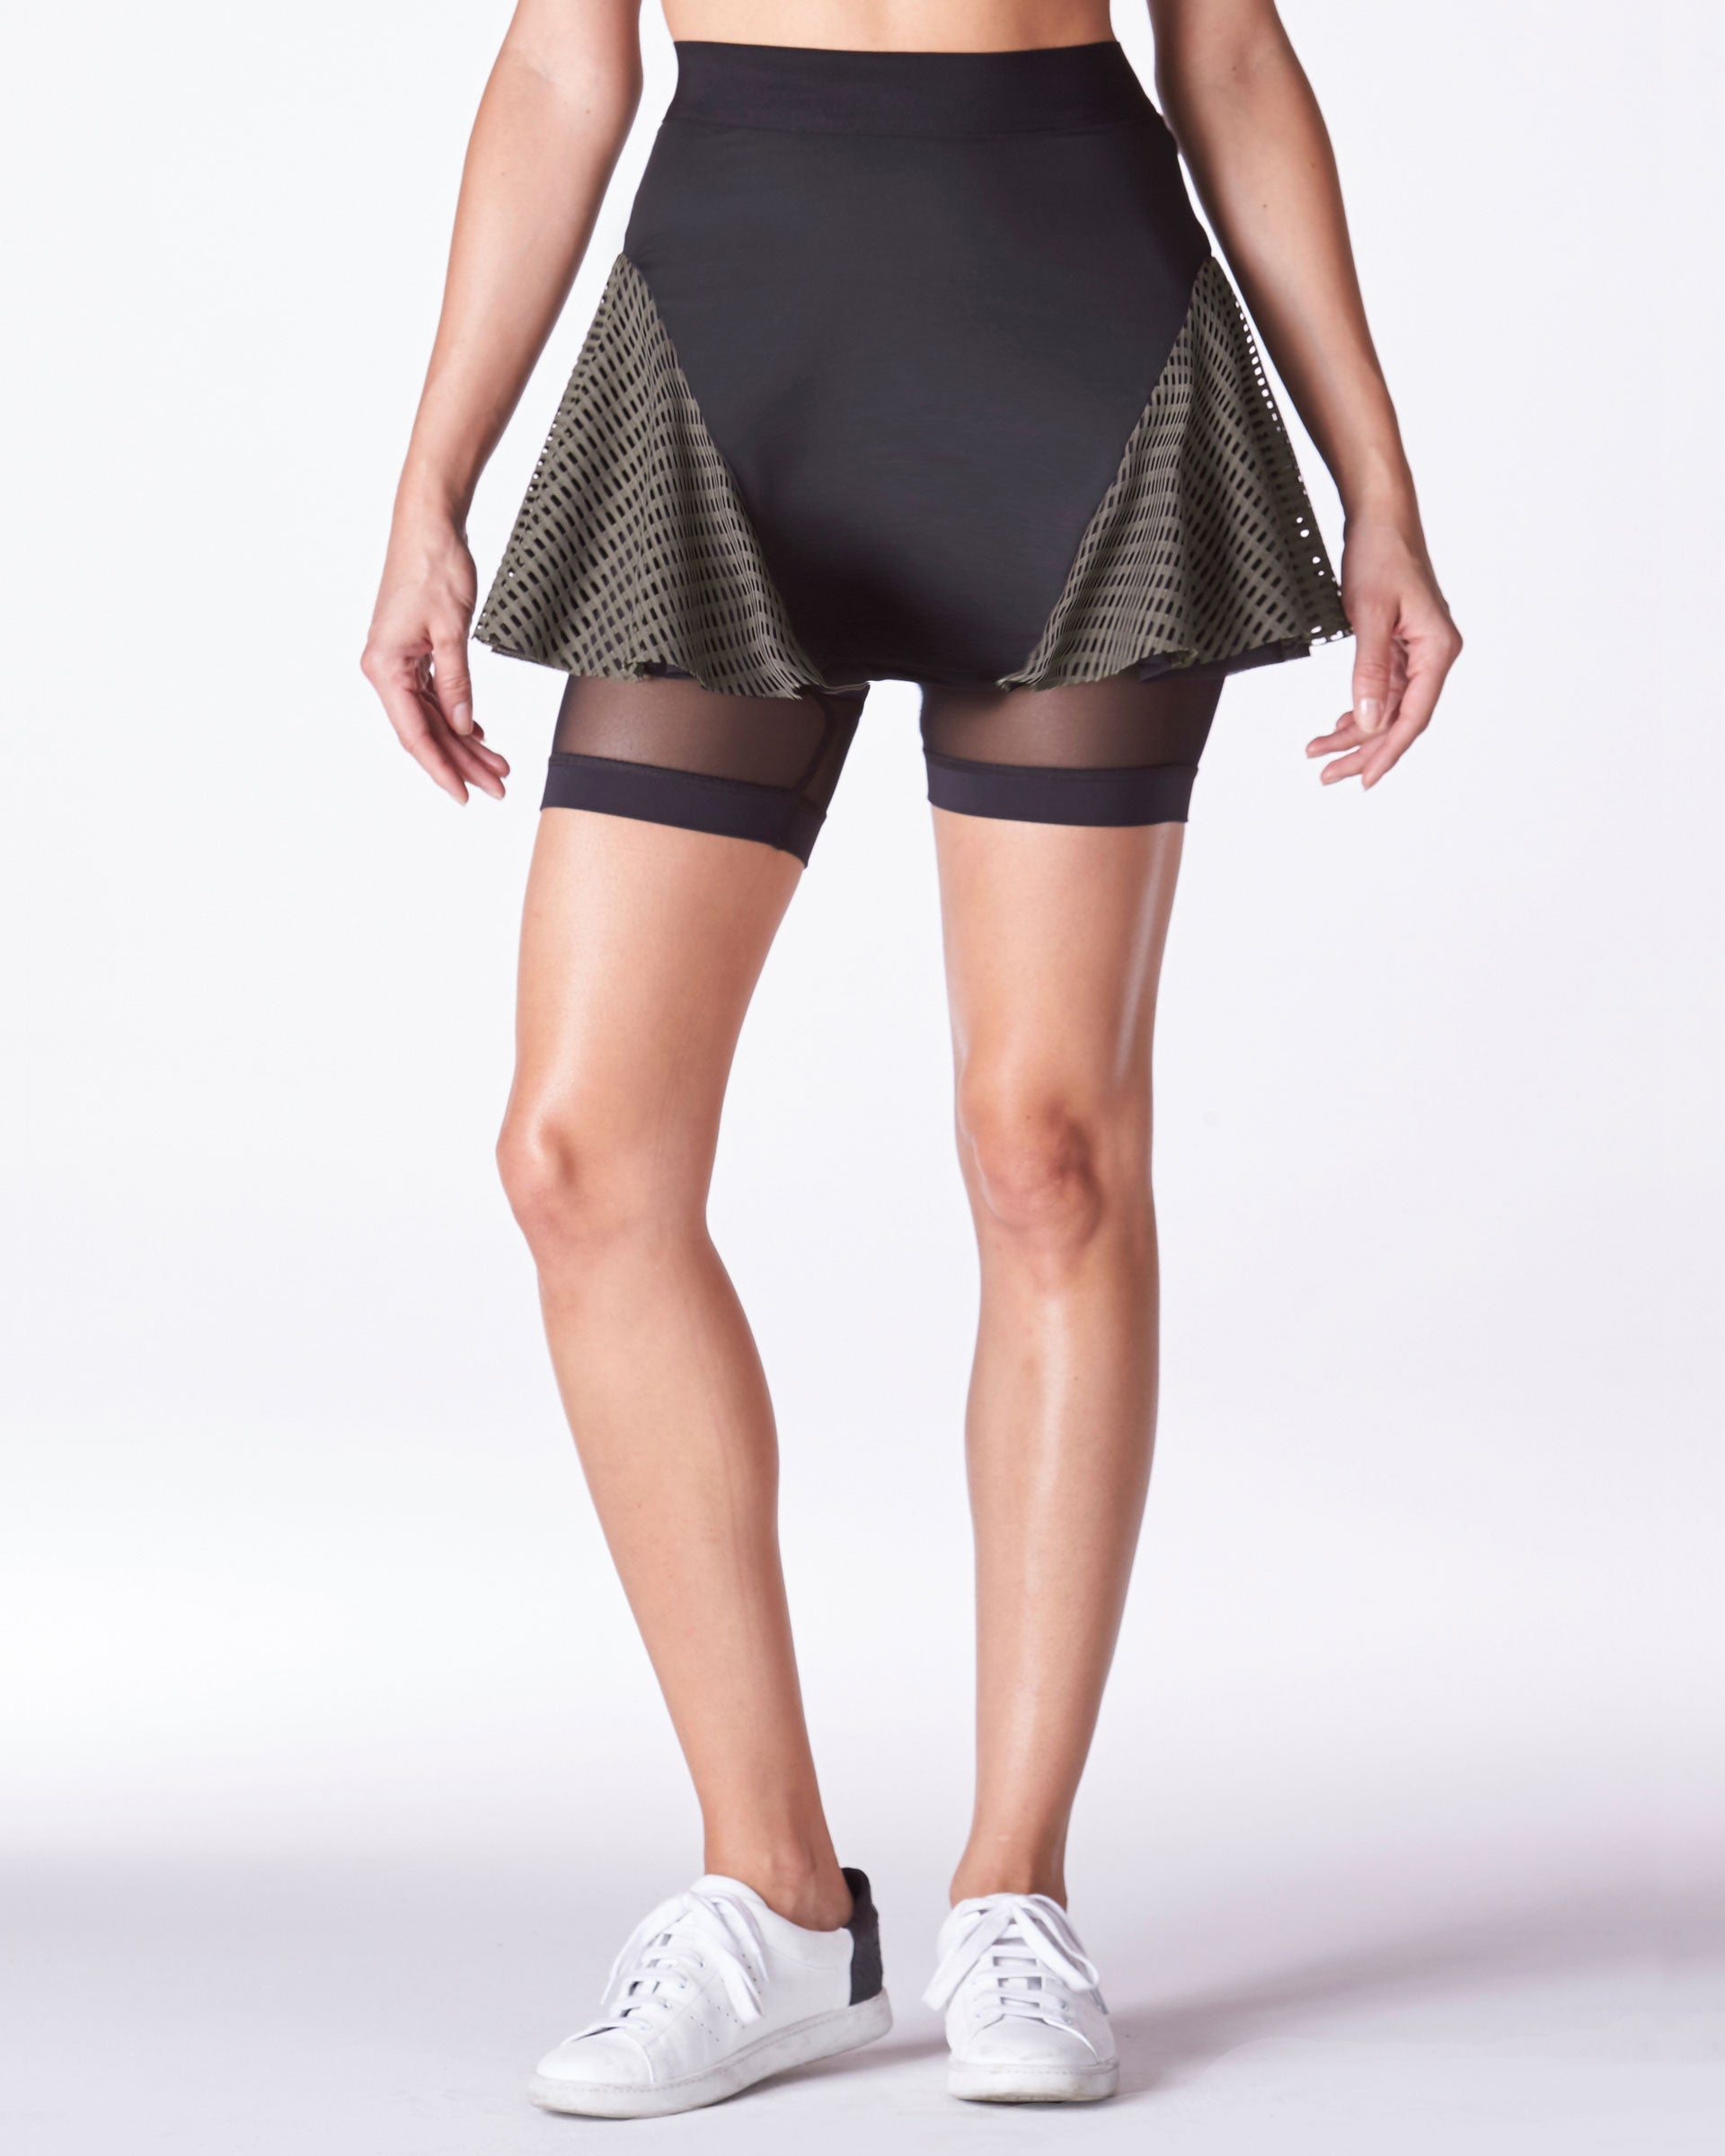 majors-tennis-skirt-olive-black-grid